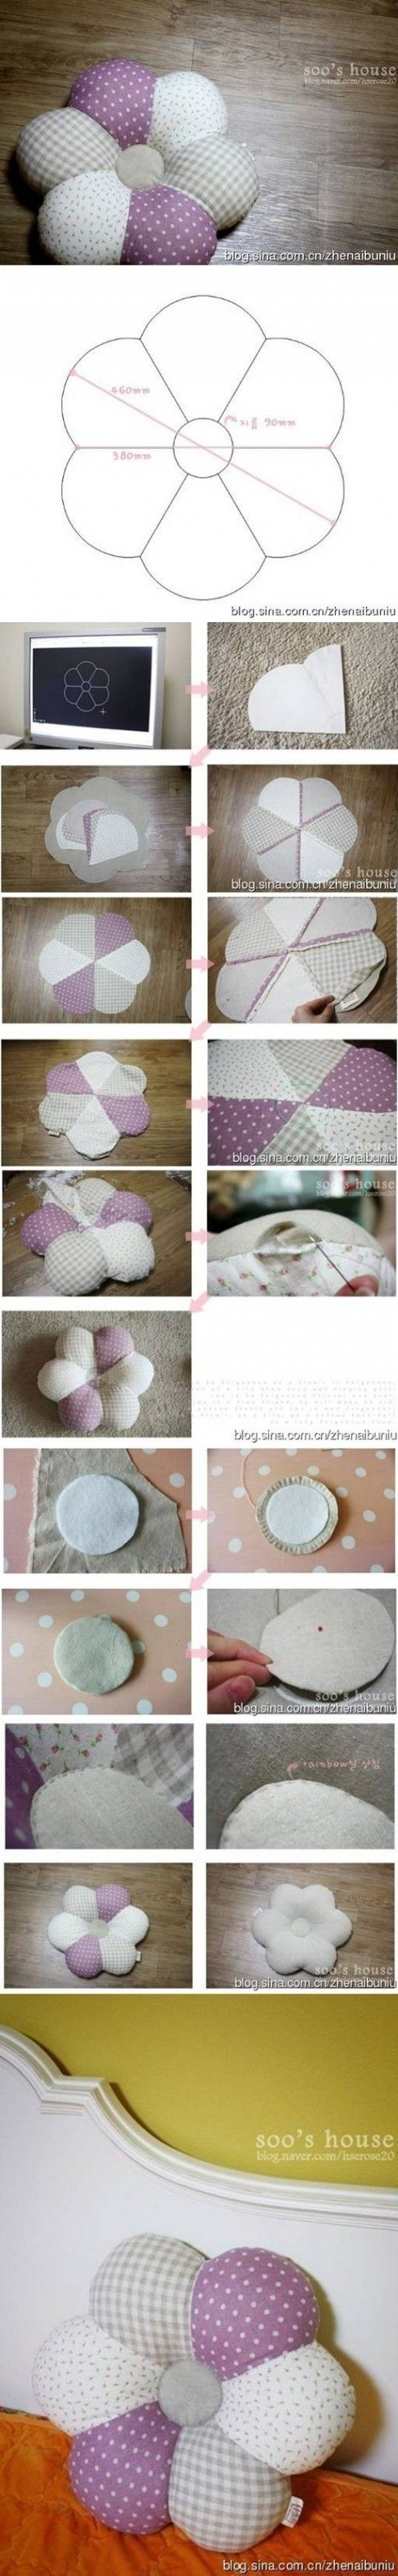 How to how to do diy instructions crafts do it yourself diy how to how to do diy instructions crafts do it yourself solutioingenieria Choice Image